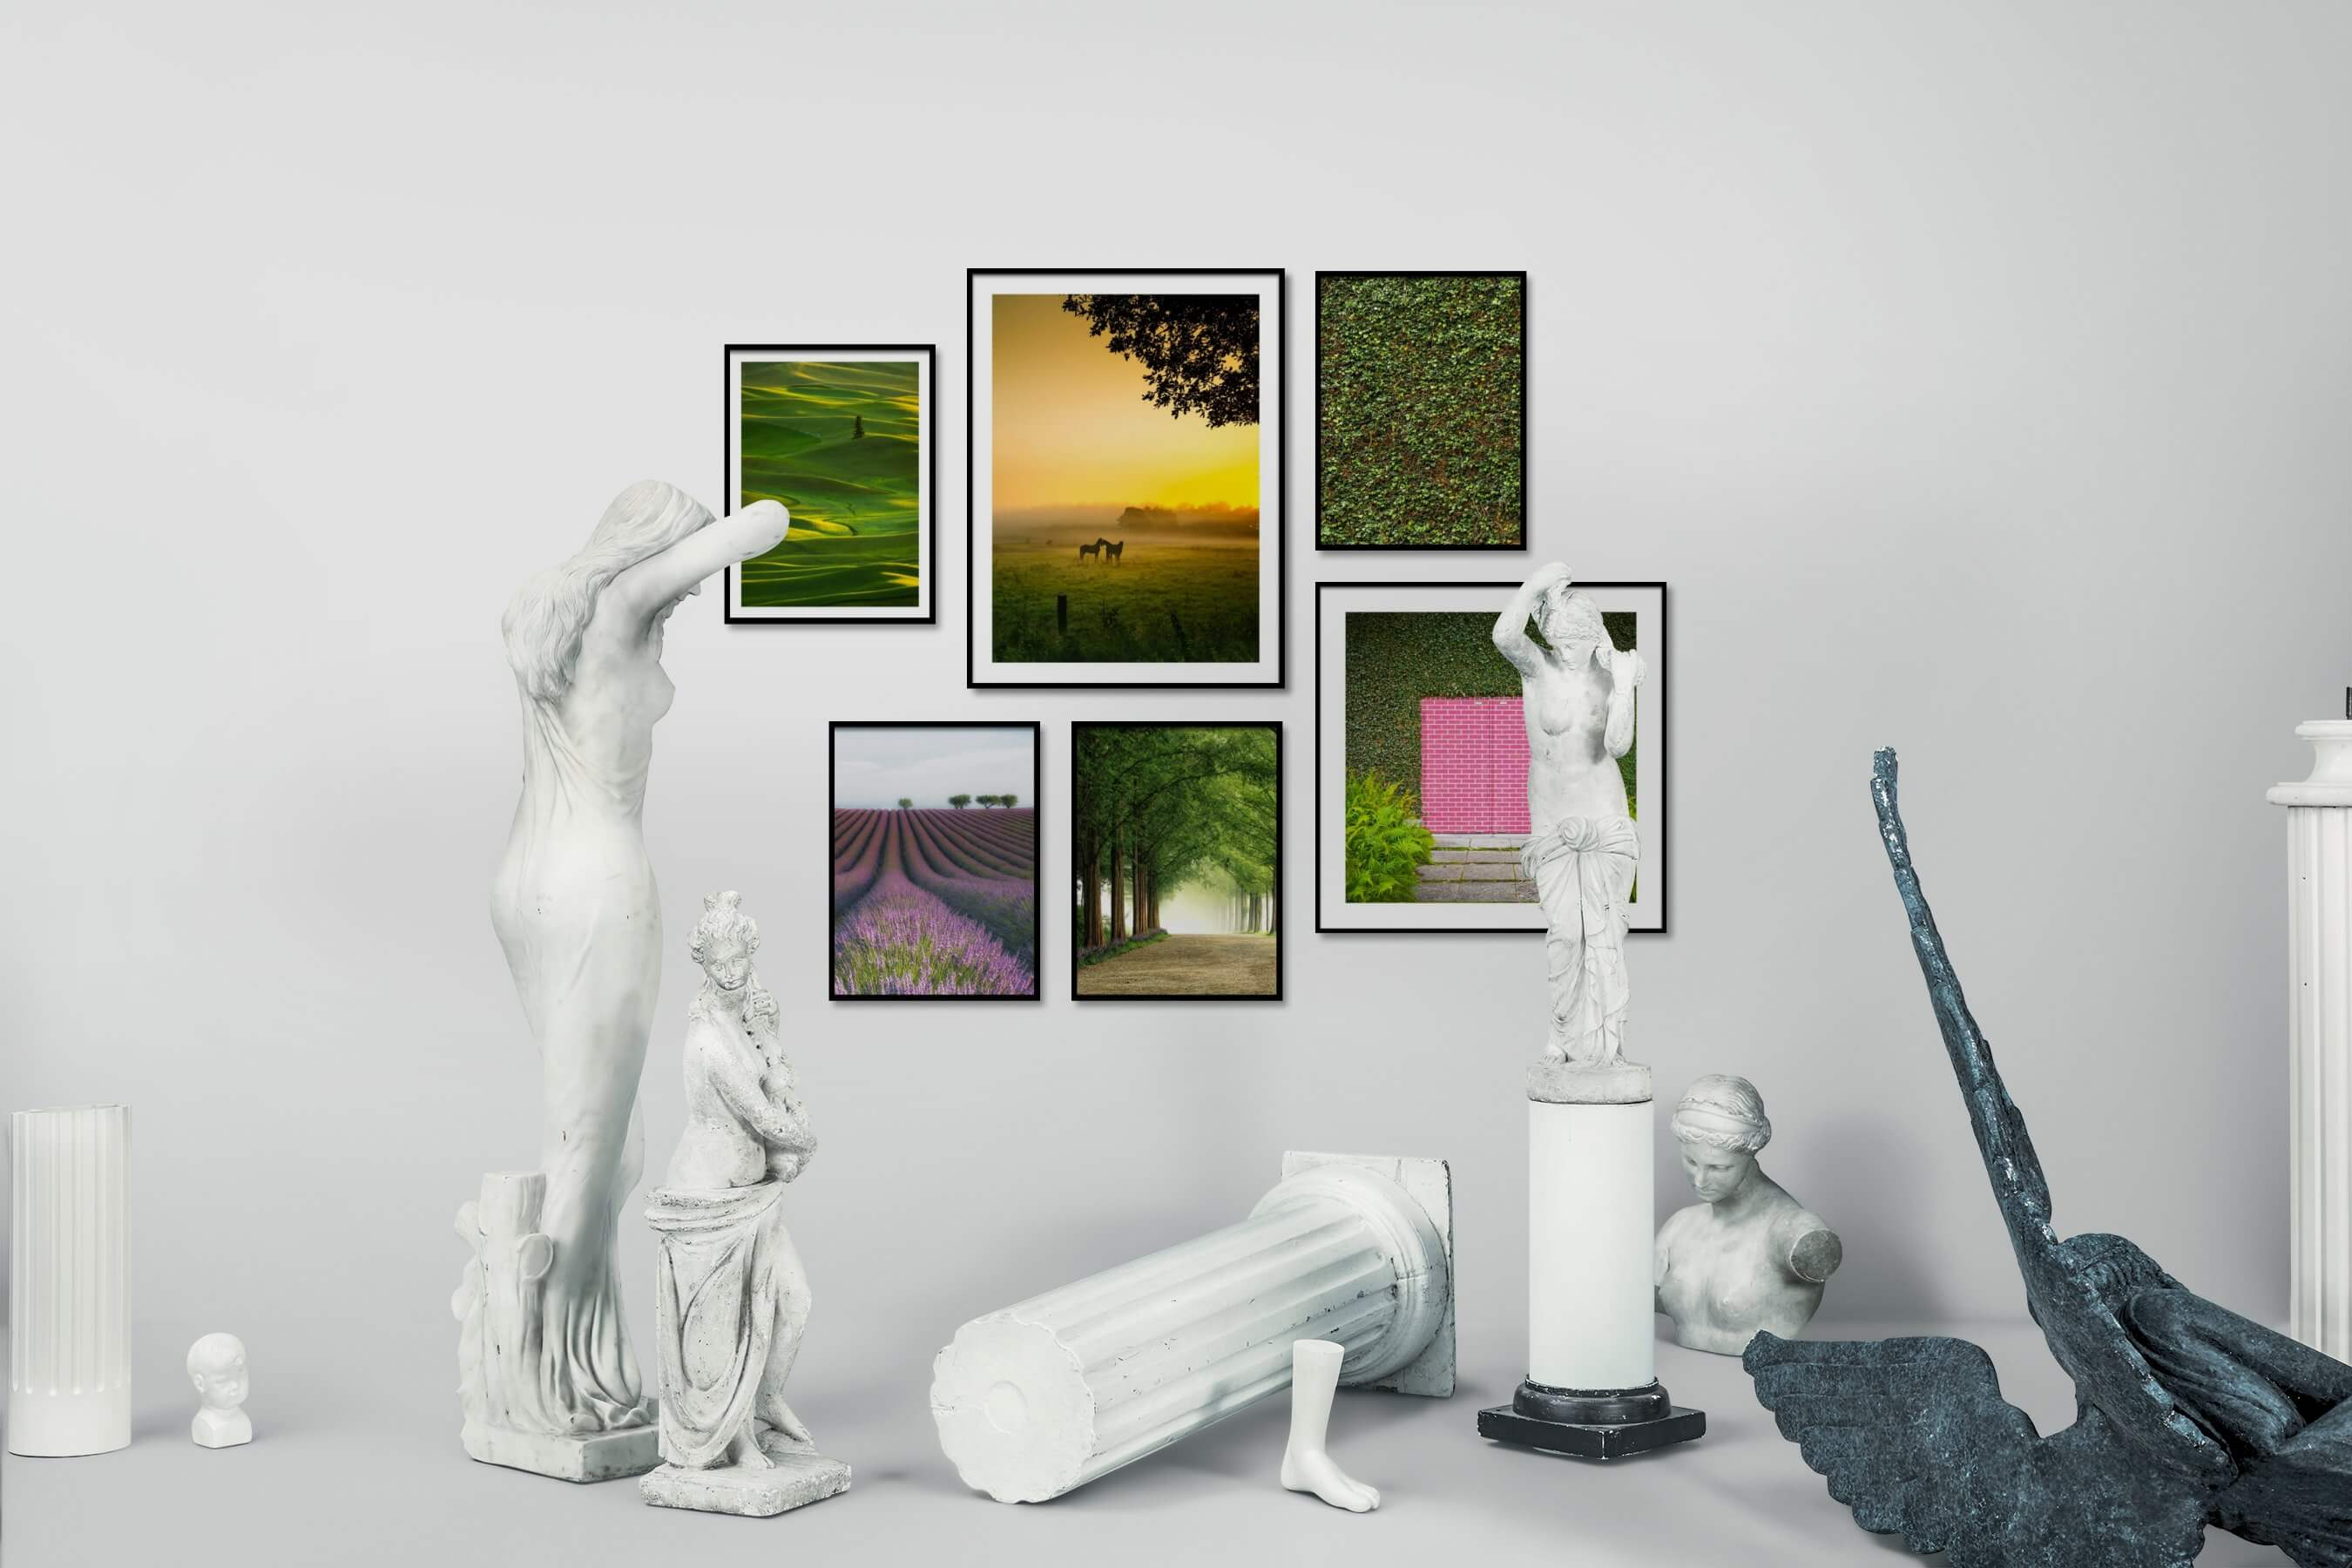 Gallery wall idea with six framed pictures arranged on a wall depicting For the Moderate, Country Life, Animals, For the Maximalist, and Flowers & Plants